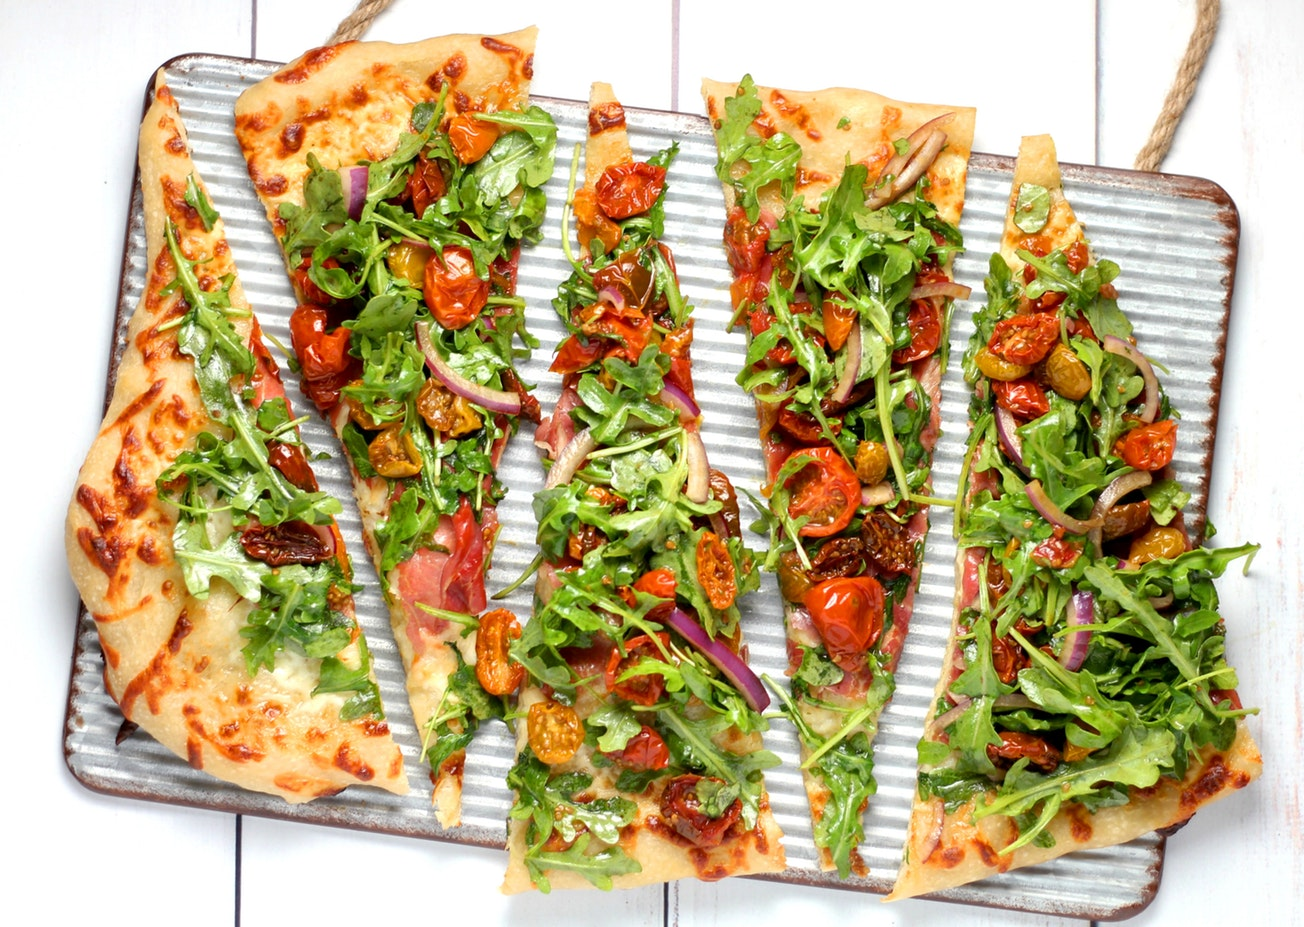 A flatbread with arugula. Arugula is a great food for seniors.